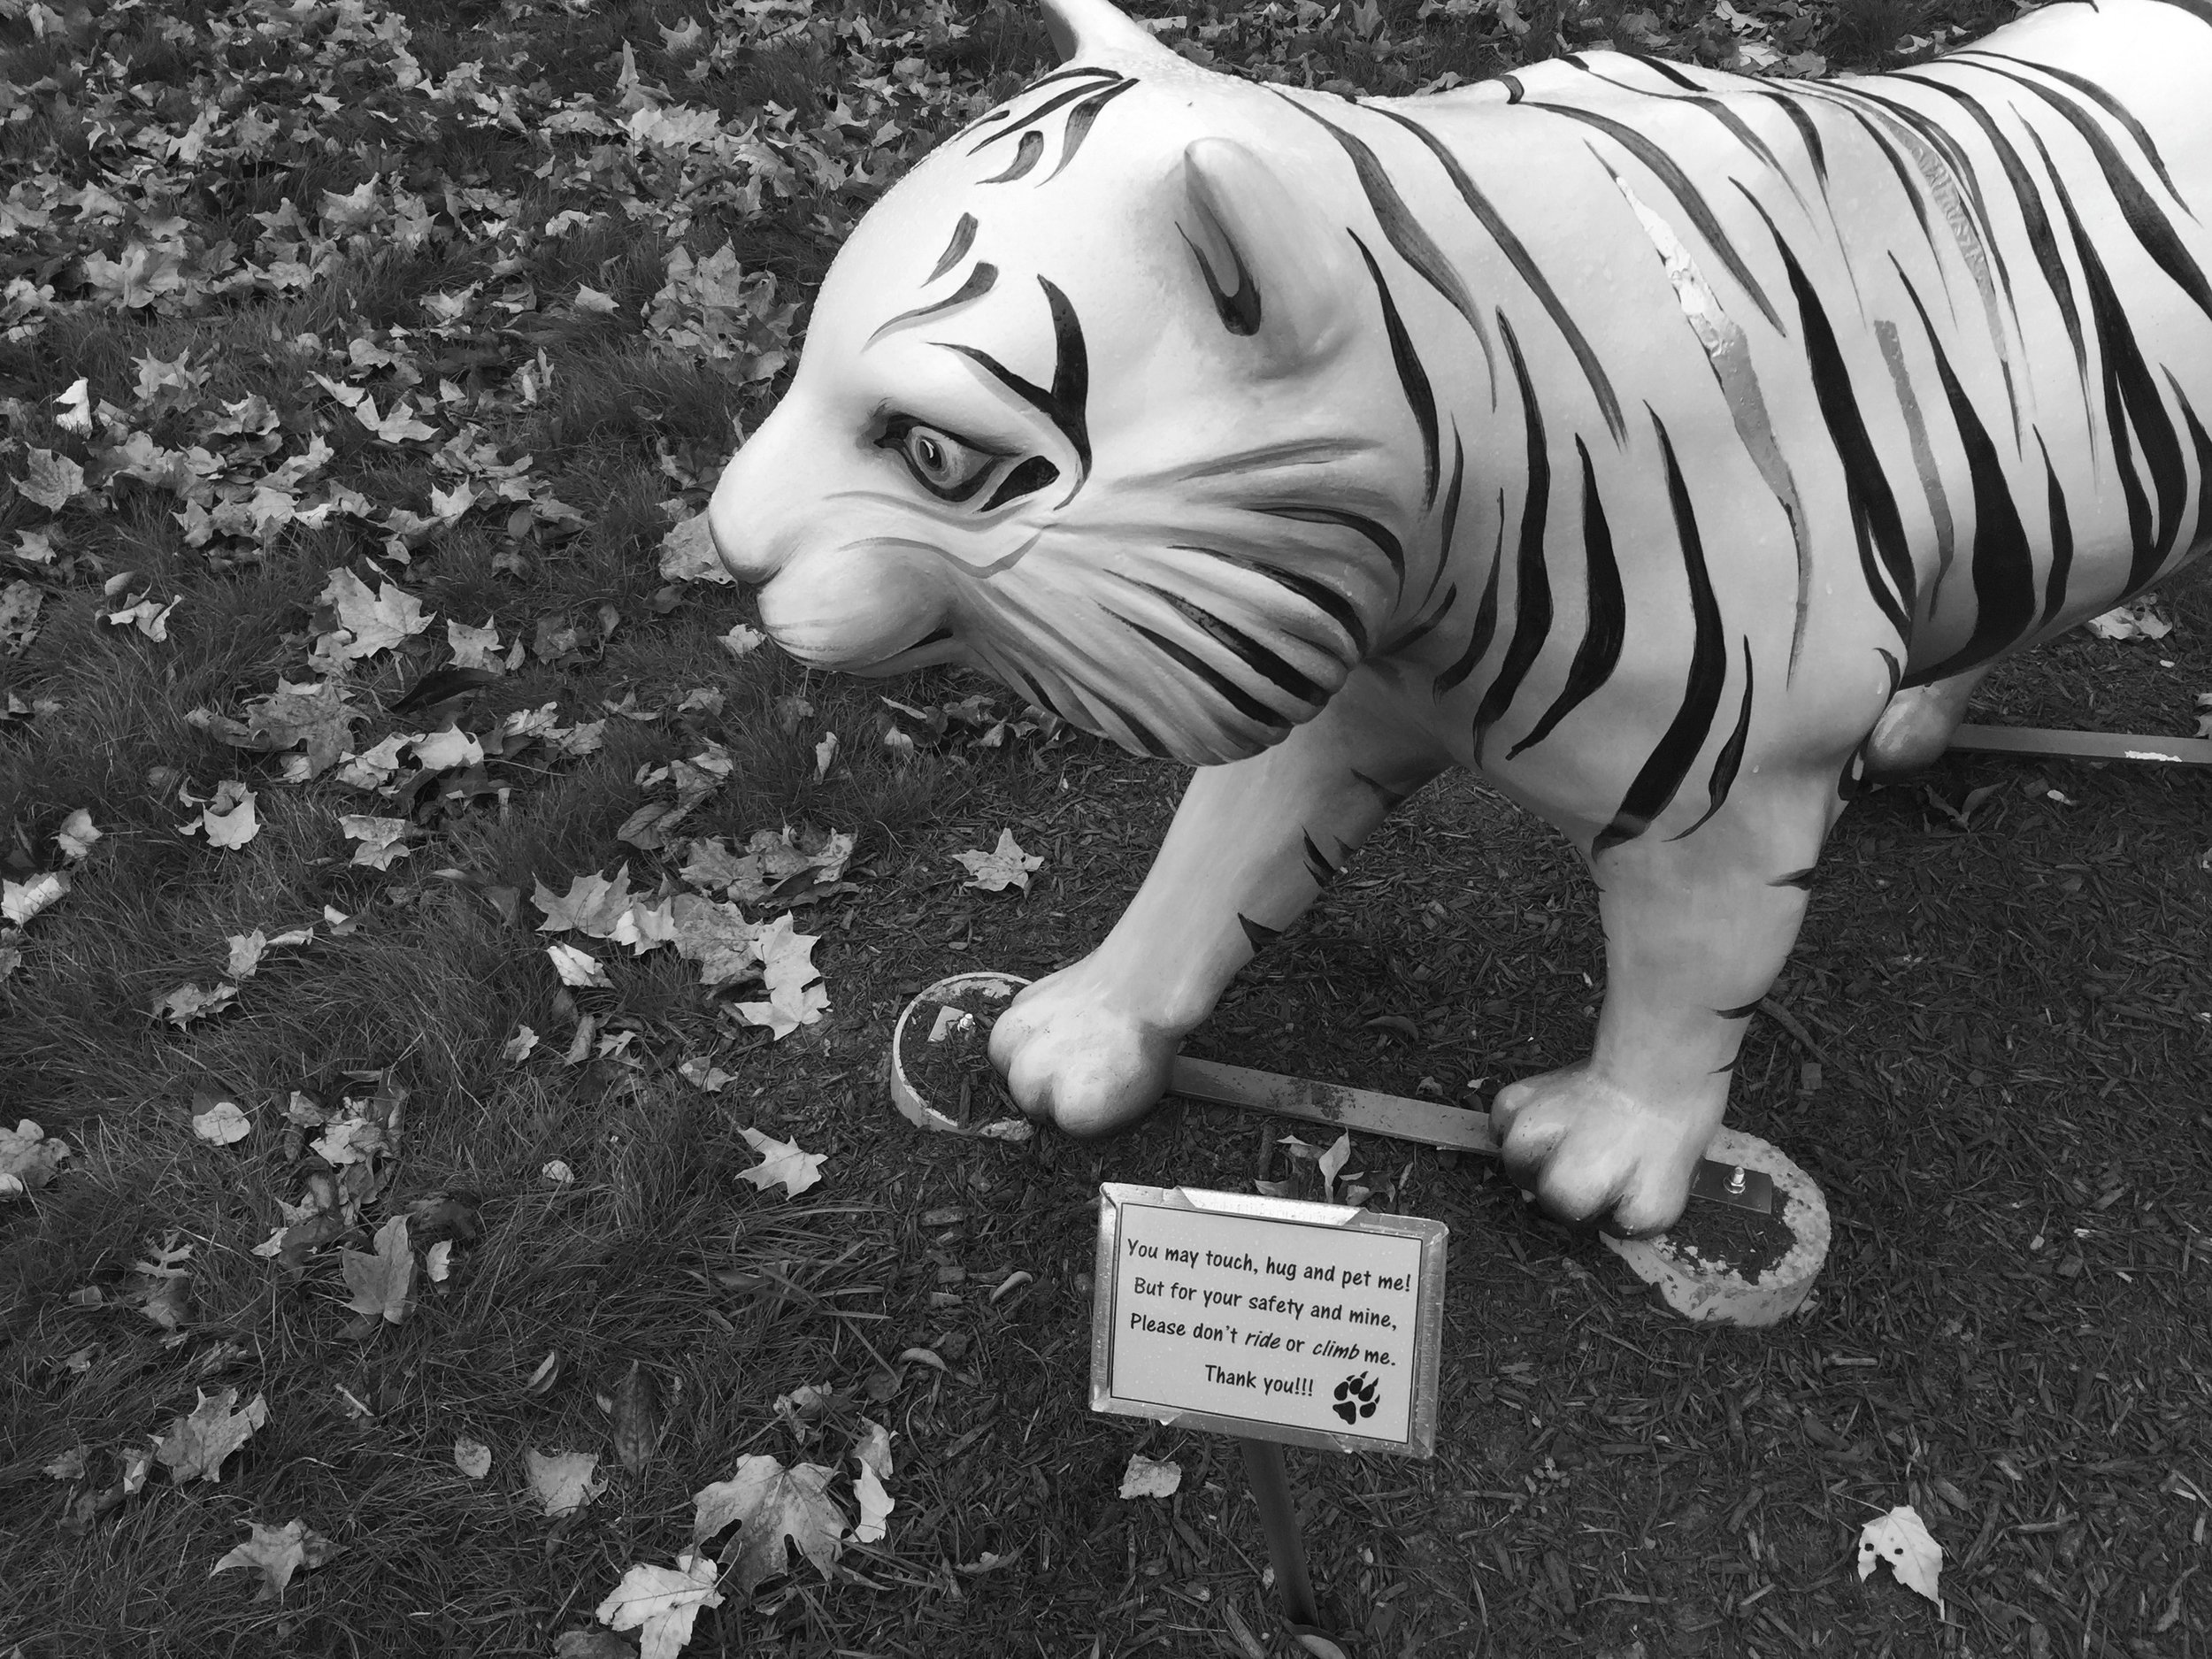 Photo by Hannah Roach '17 The tiger has since been nailed down in front of Gaylord Library so as to avoid a second relocation.